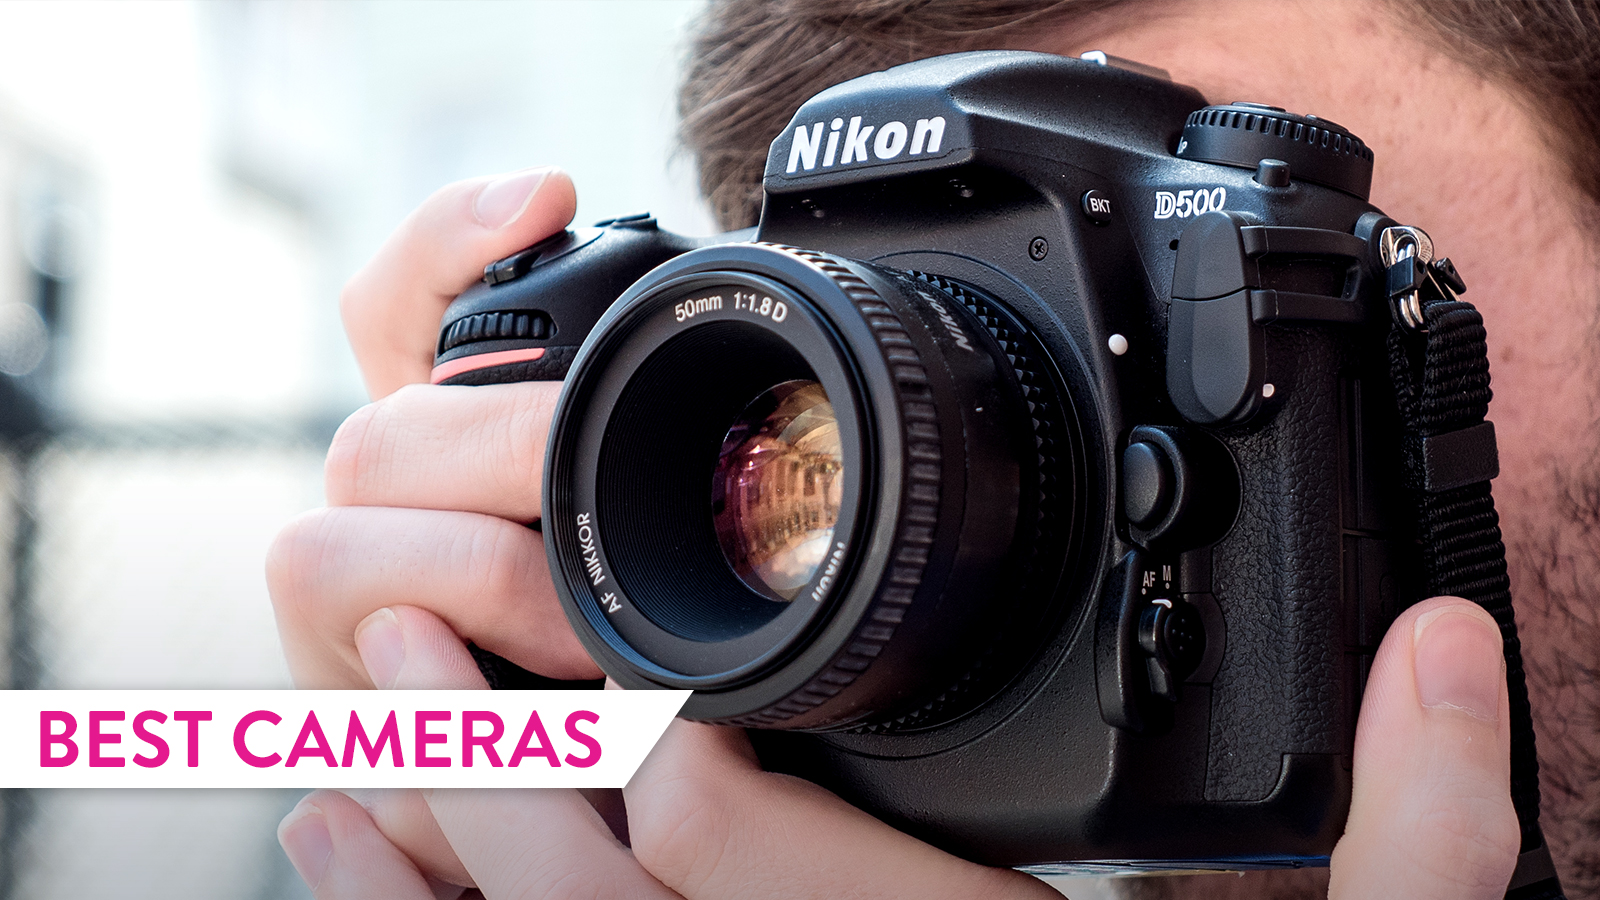 These are the best cameras of 2017